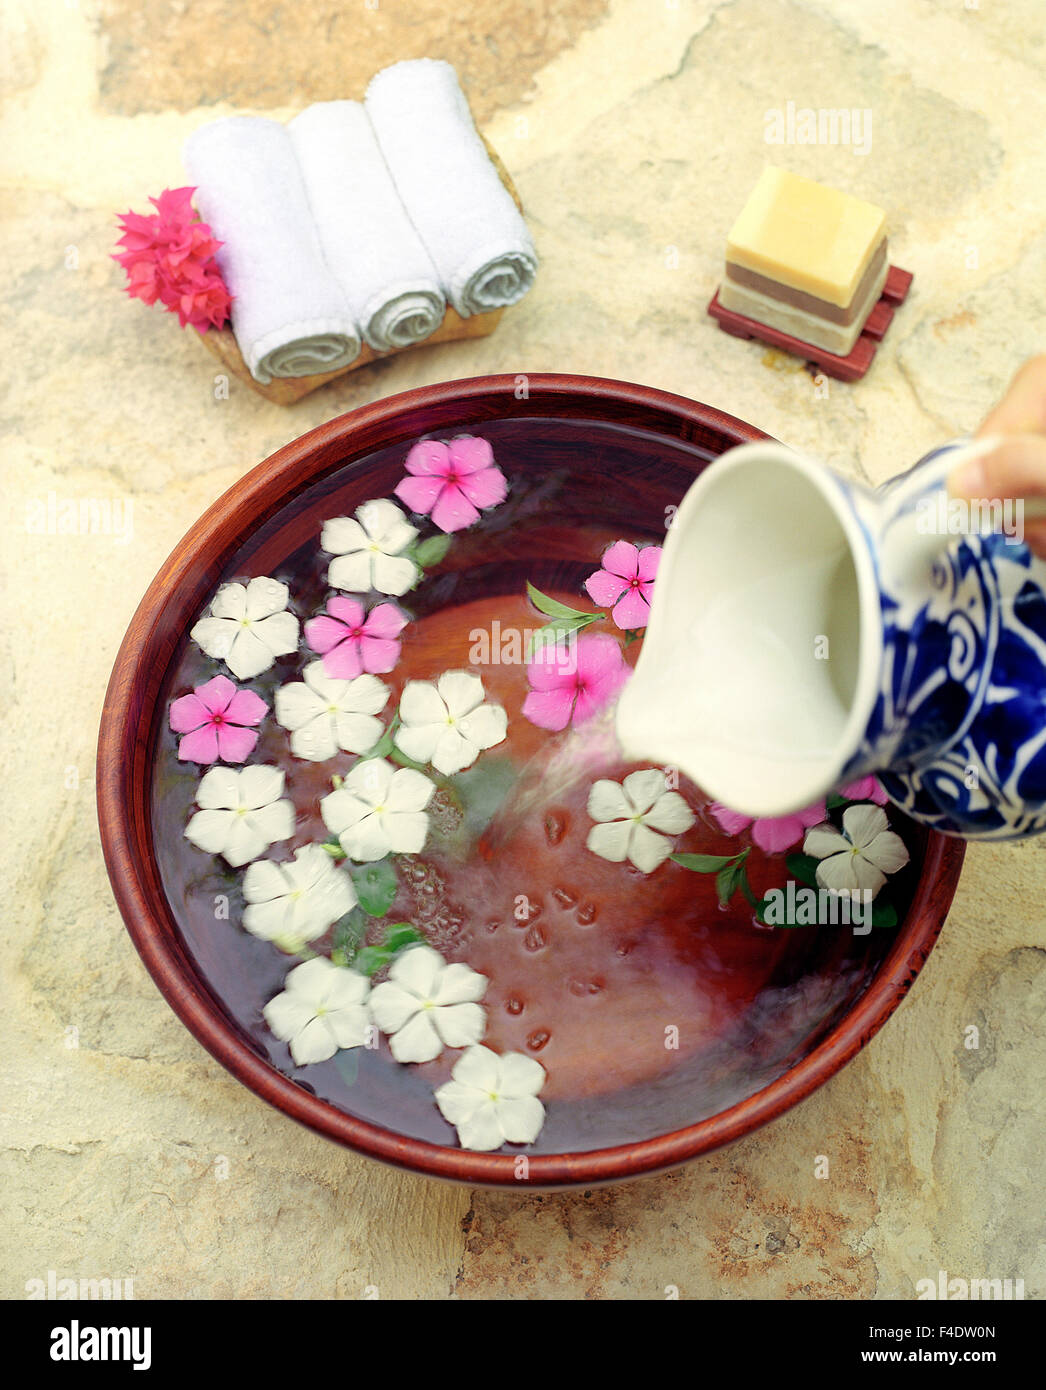 A foot wash with Mexican myrtle flowers  and orange blossom, chocolate truffle, mint soaps. Riviera Maya,Yucatan,Mexico - Stock Image